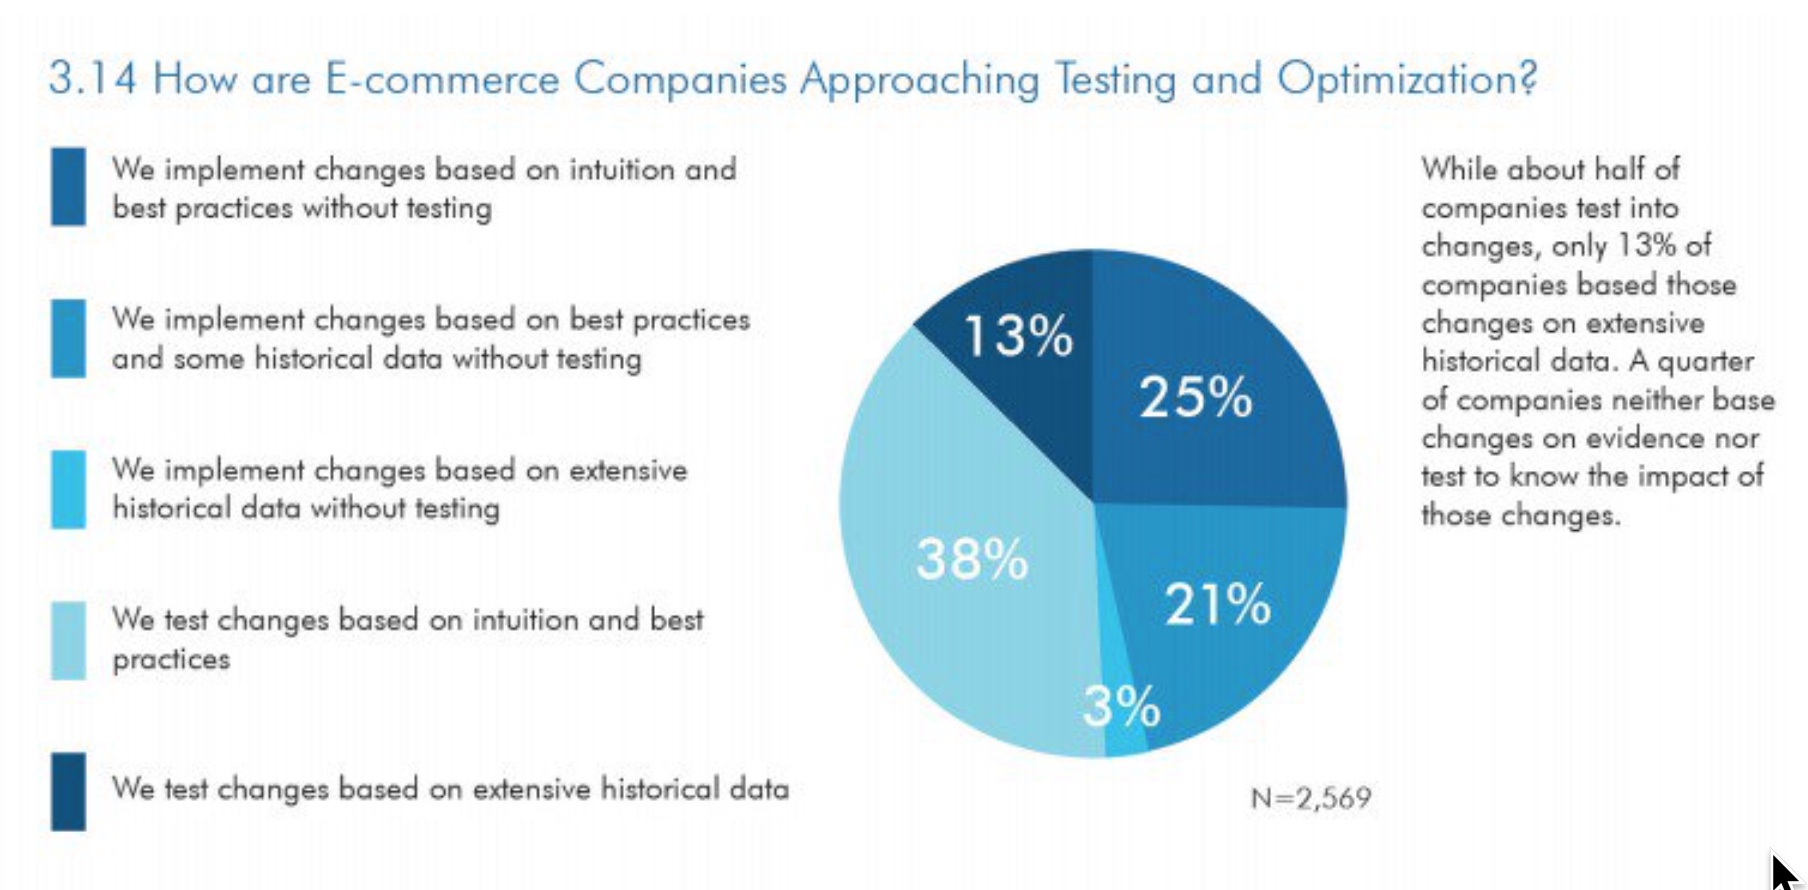 Chart showing how e-commerce companies approach testing and optimization